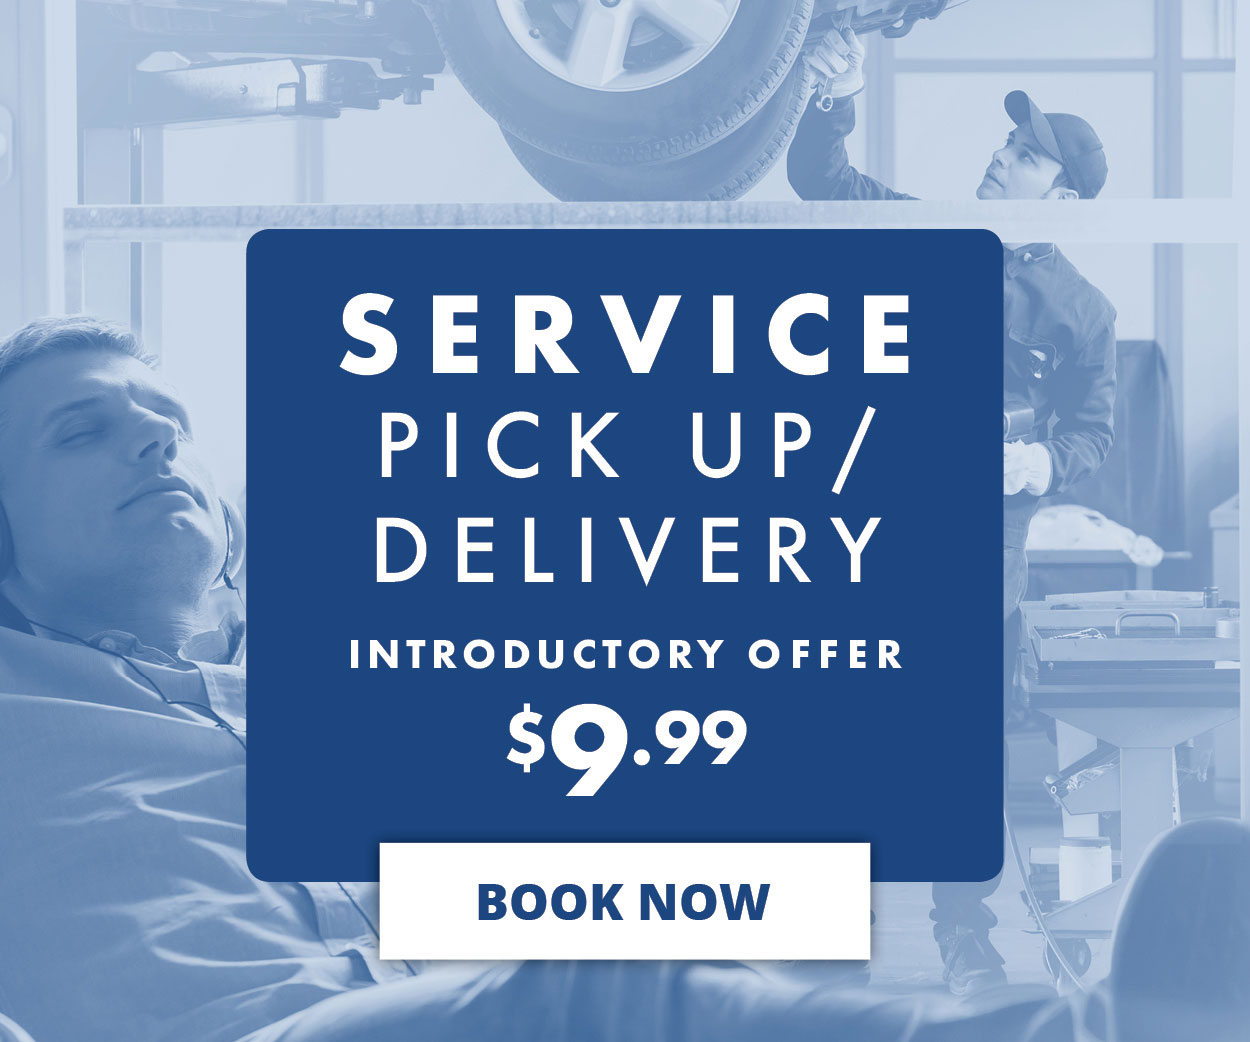 Pick up / Delivery for your next Service Appointment. BOOK NOW >